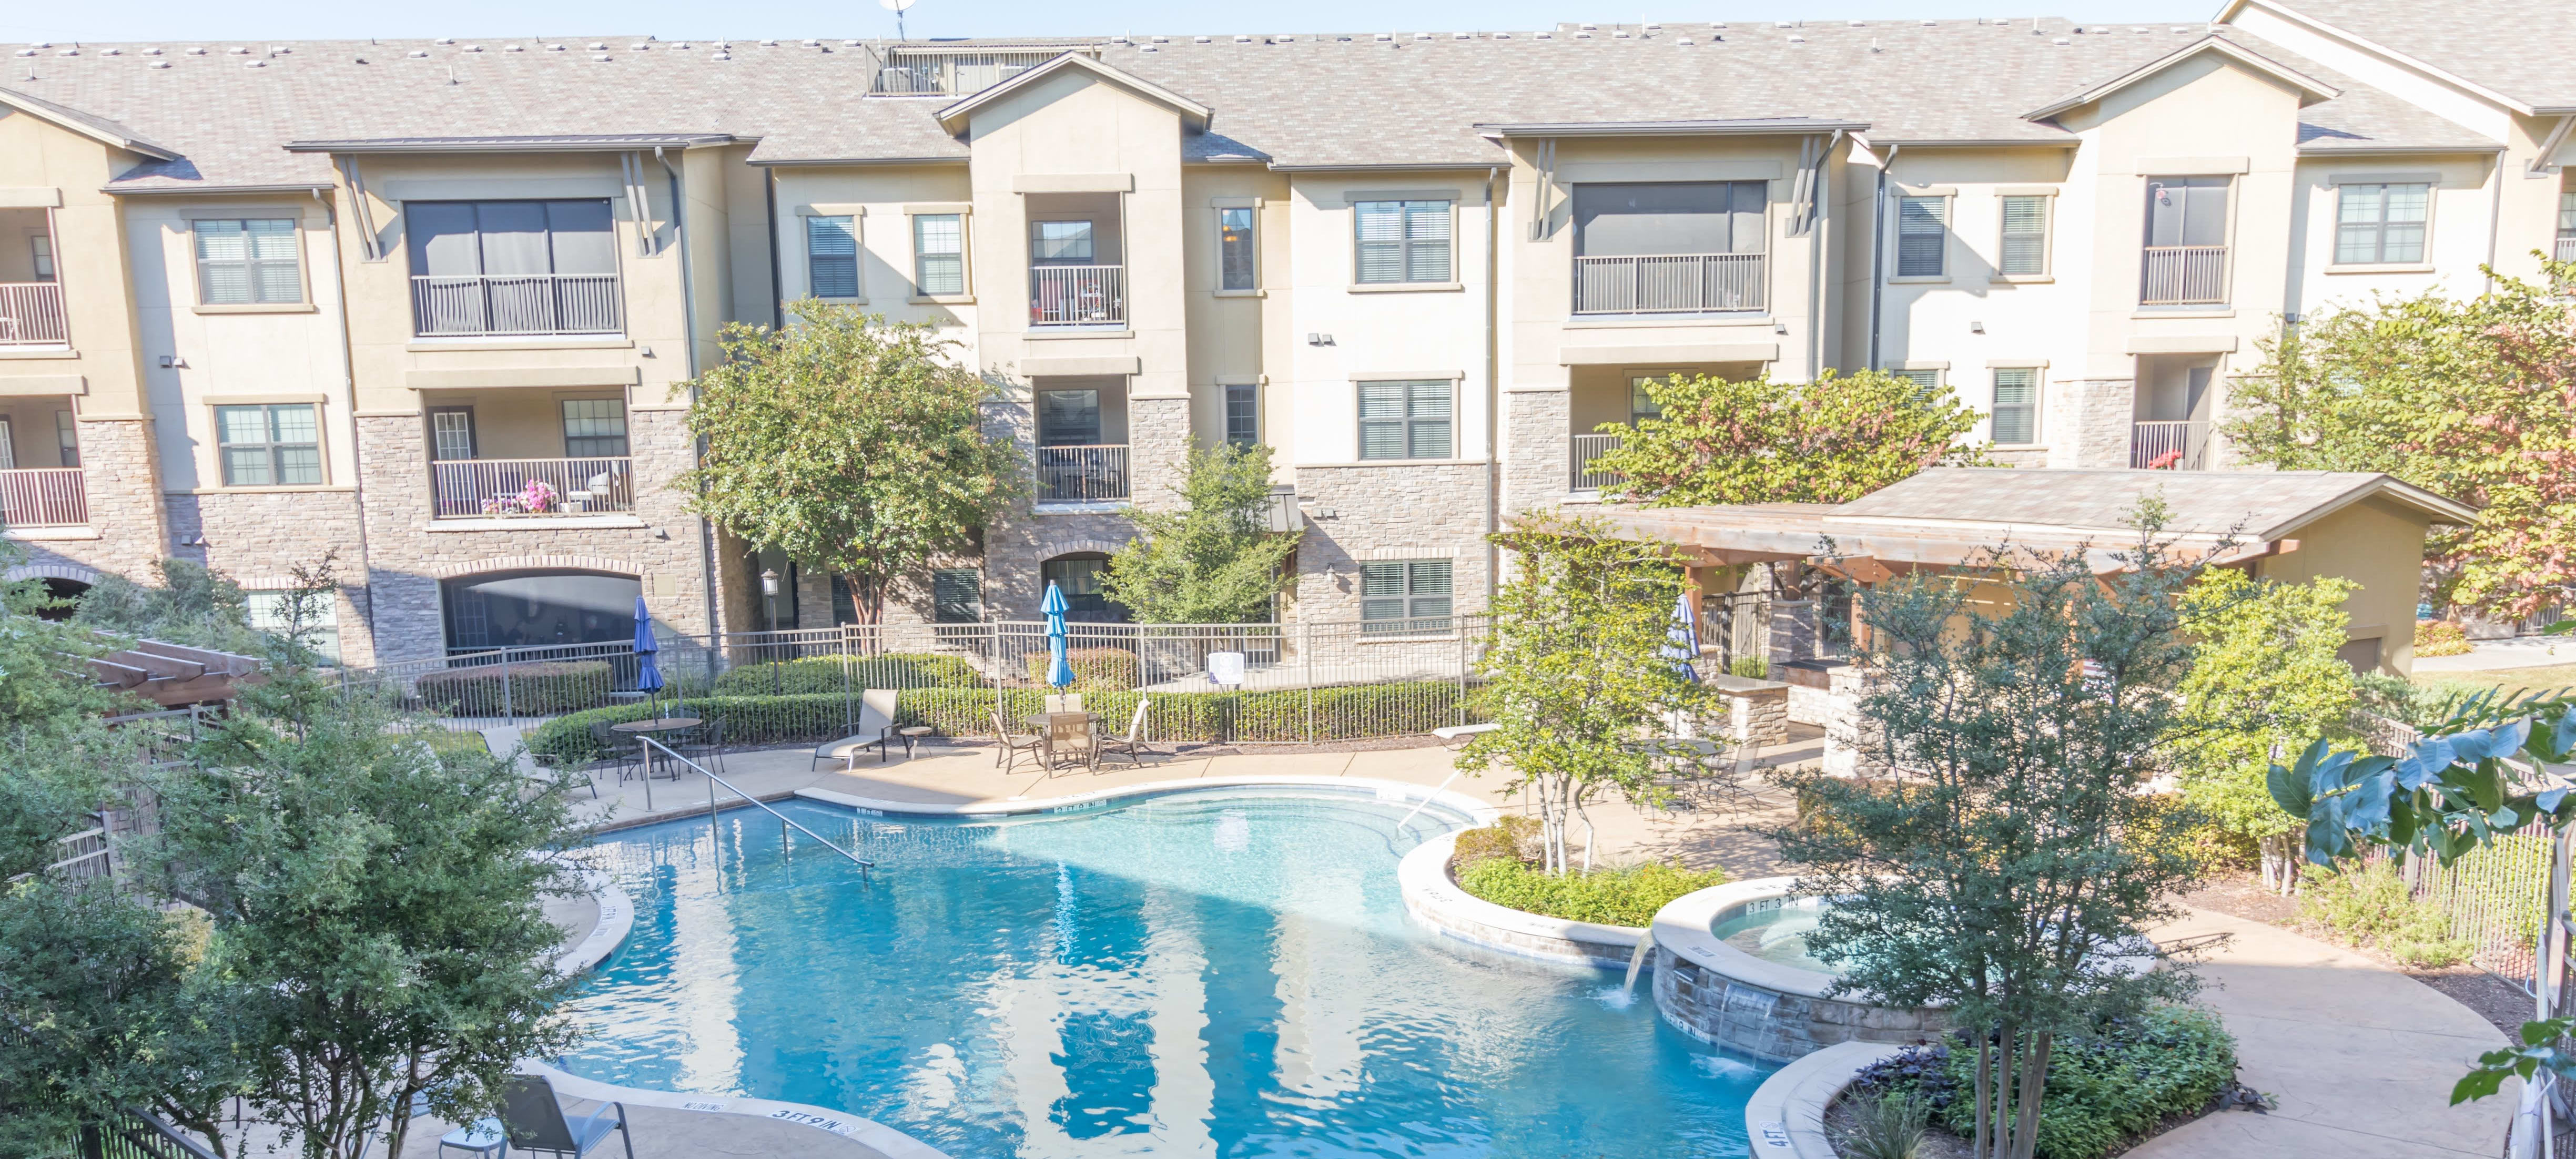 Senior living options at the senior living community in Allen